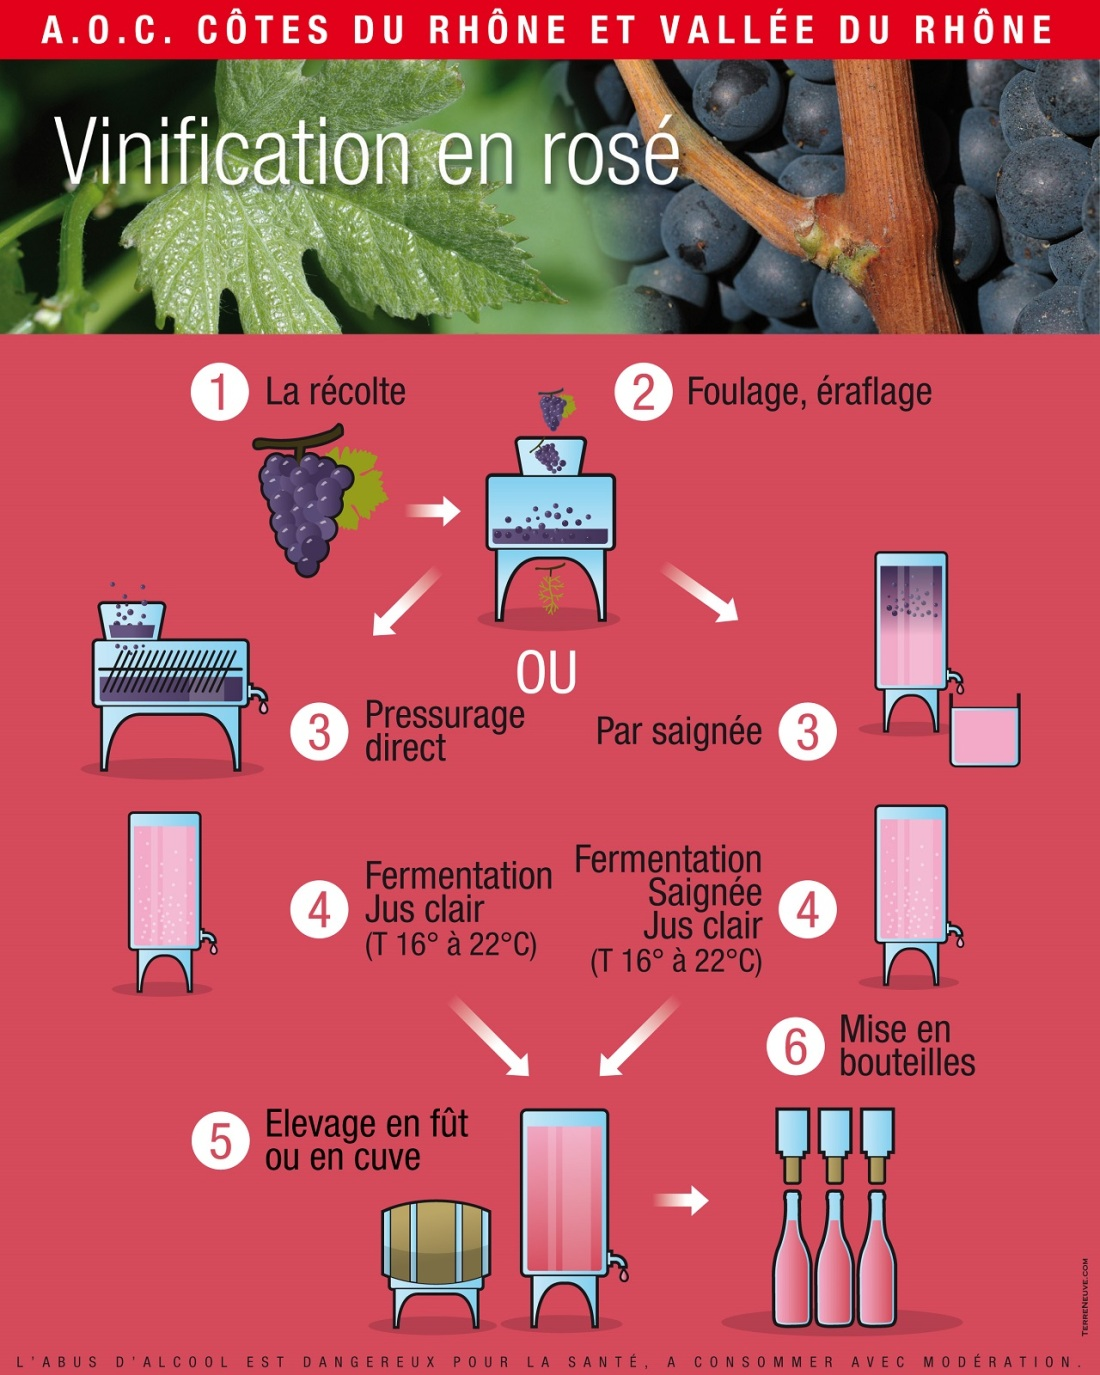 VinificationRosejpg